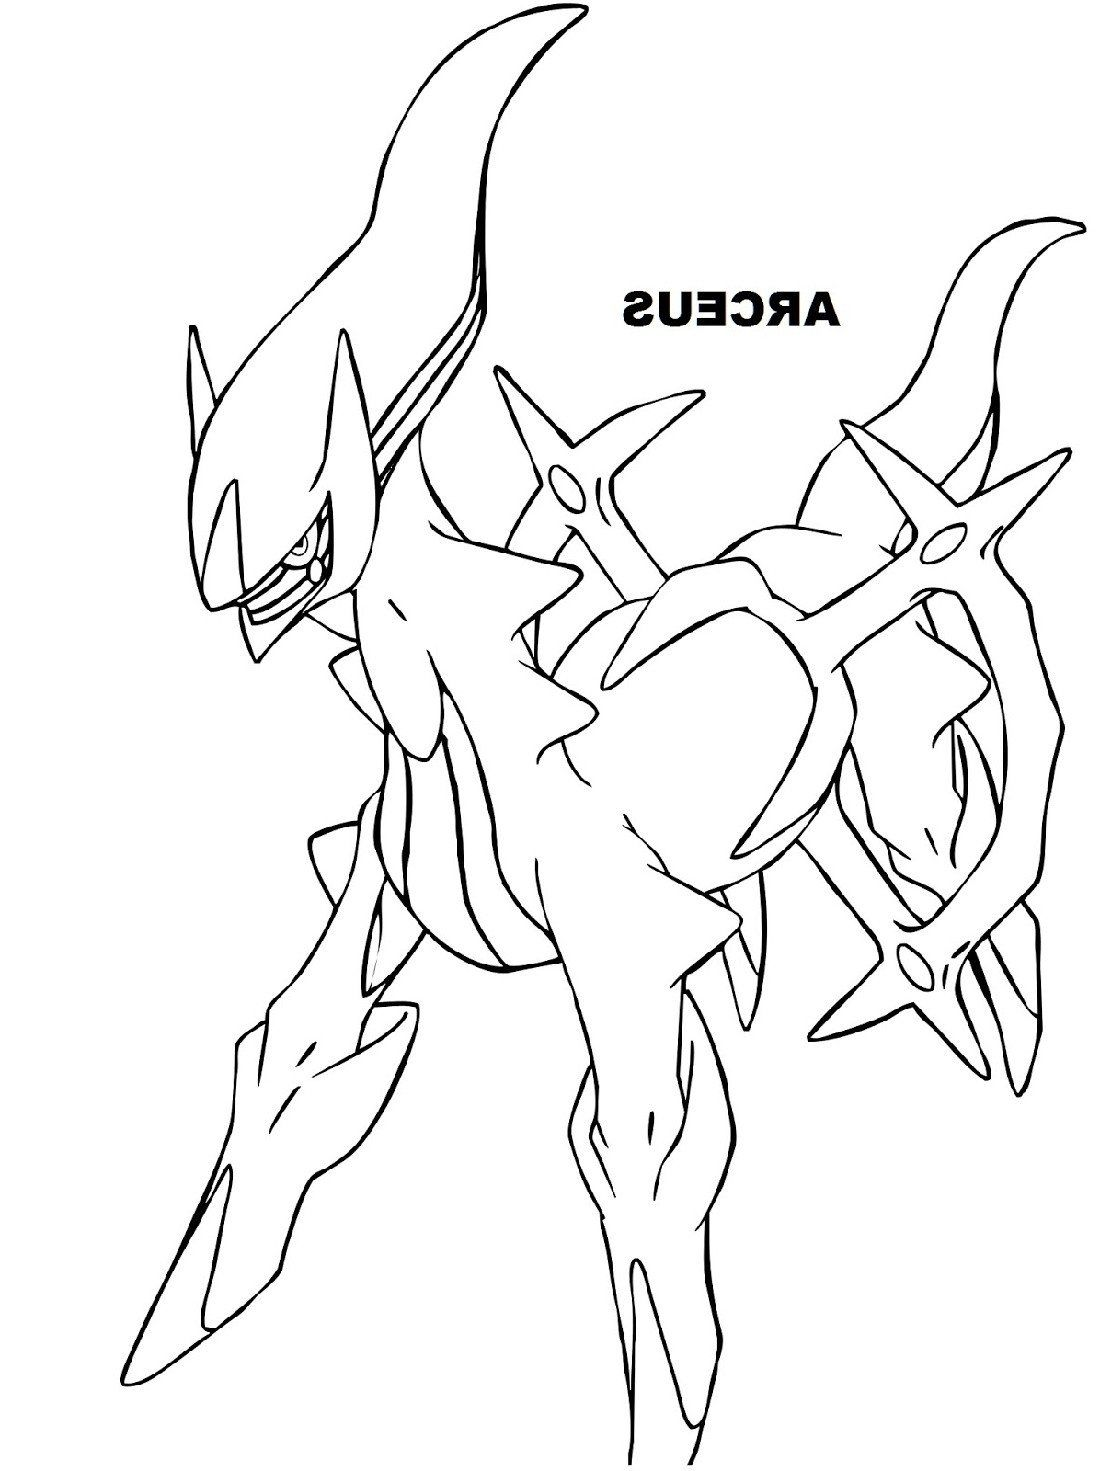 Pokemon Coloring Pages For Kids Legendary Pokemon Coloring Pages Legendary Pokemon Coloring Pokemon Coloring Pages Pokemon Coloring Coloring Pages